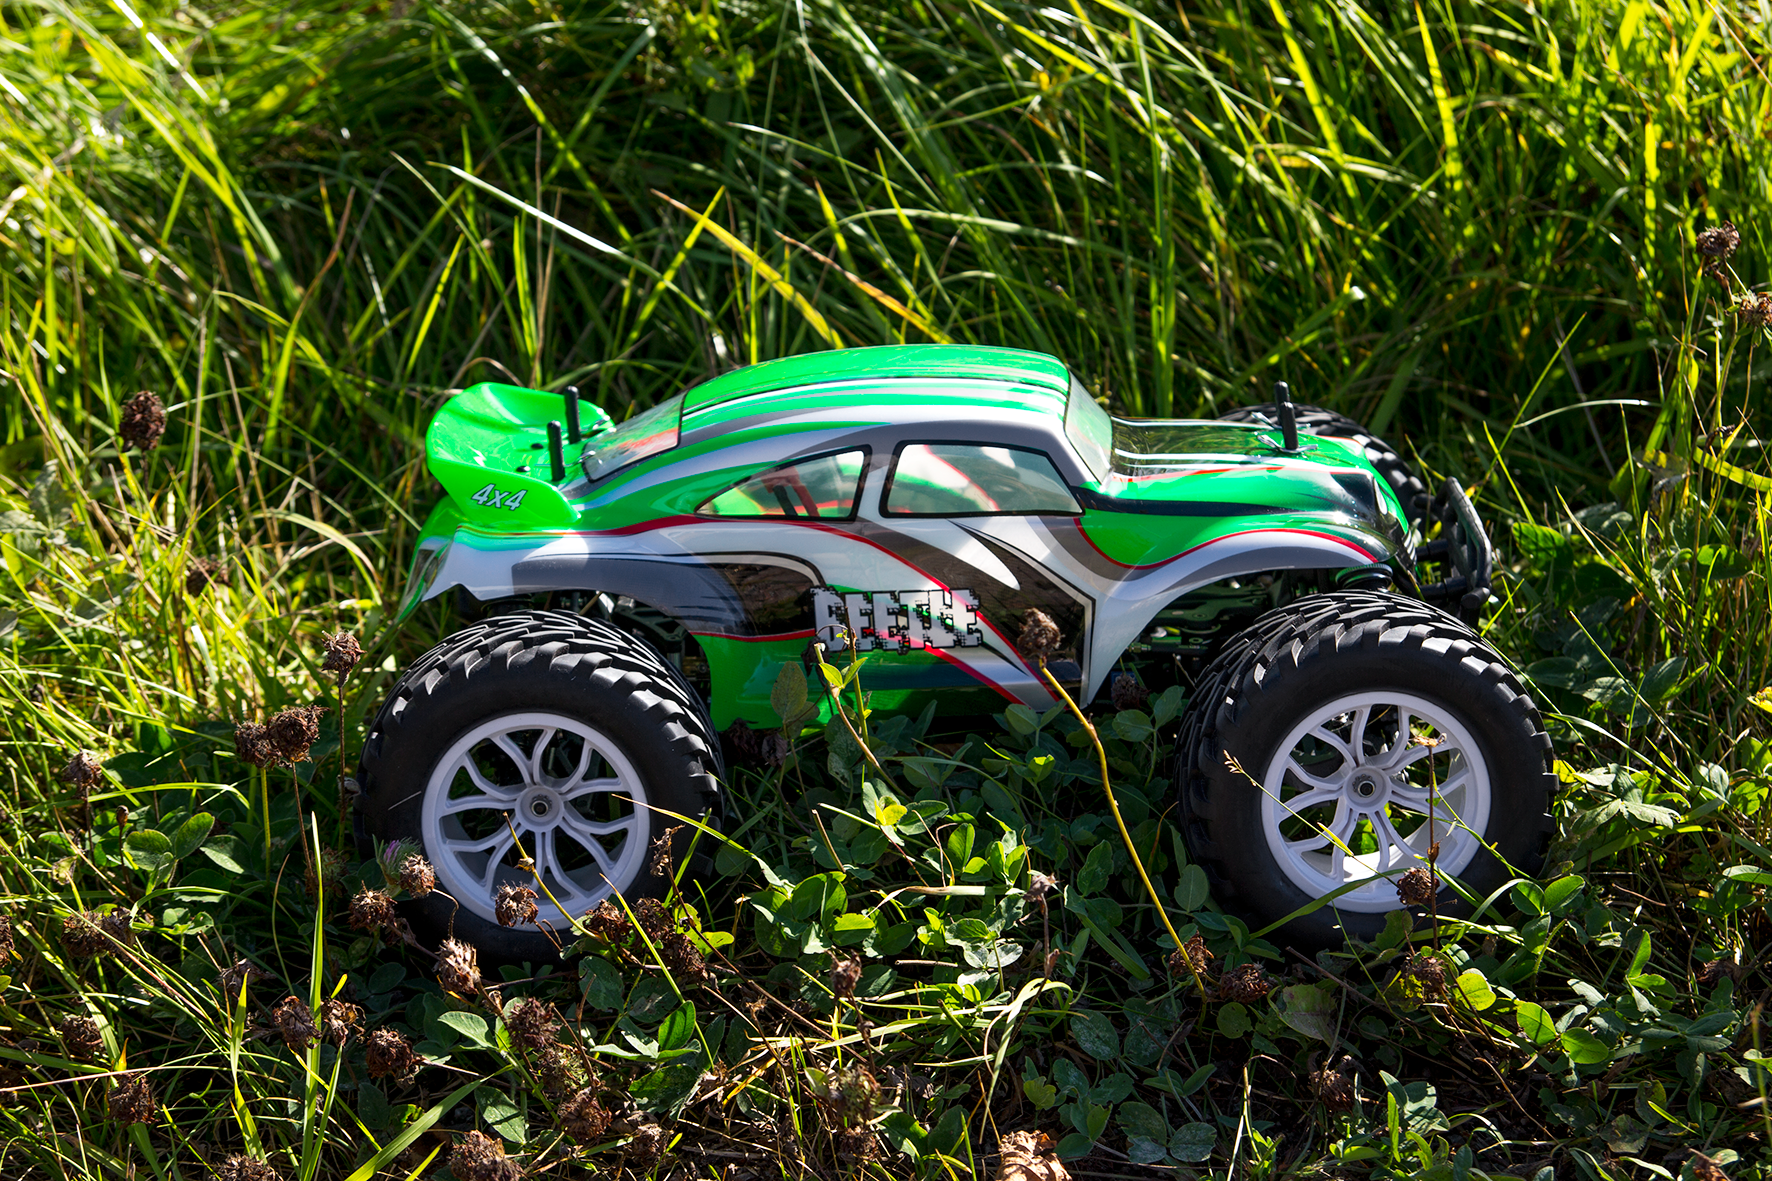 Beetle 1:10 Brushless MonsterTruck 4WD 2,4GHz thumbnail